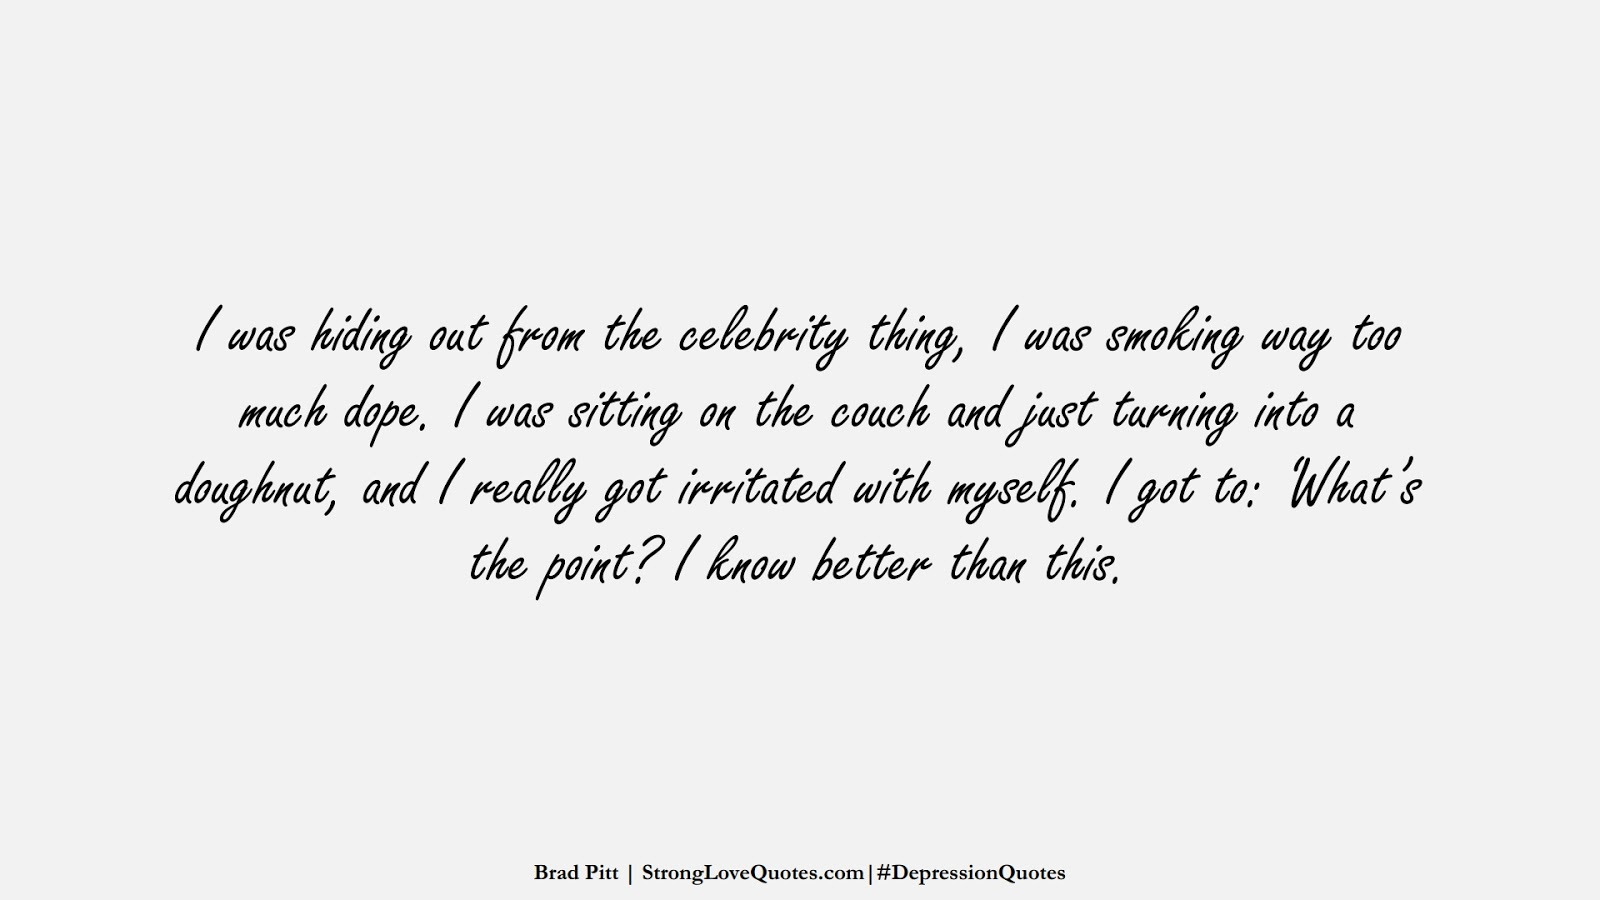 I was hiding out from the celebrity thing, I was smoking way too much dope. I was sitting on the couch and just turning into a doughnut, and I really got irritated with myself. I got to: 'What's the point? I know better than this. (Brad Pitt);  #DepressionQuotes